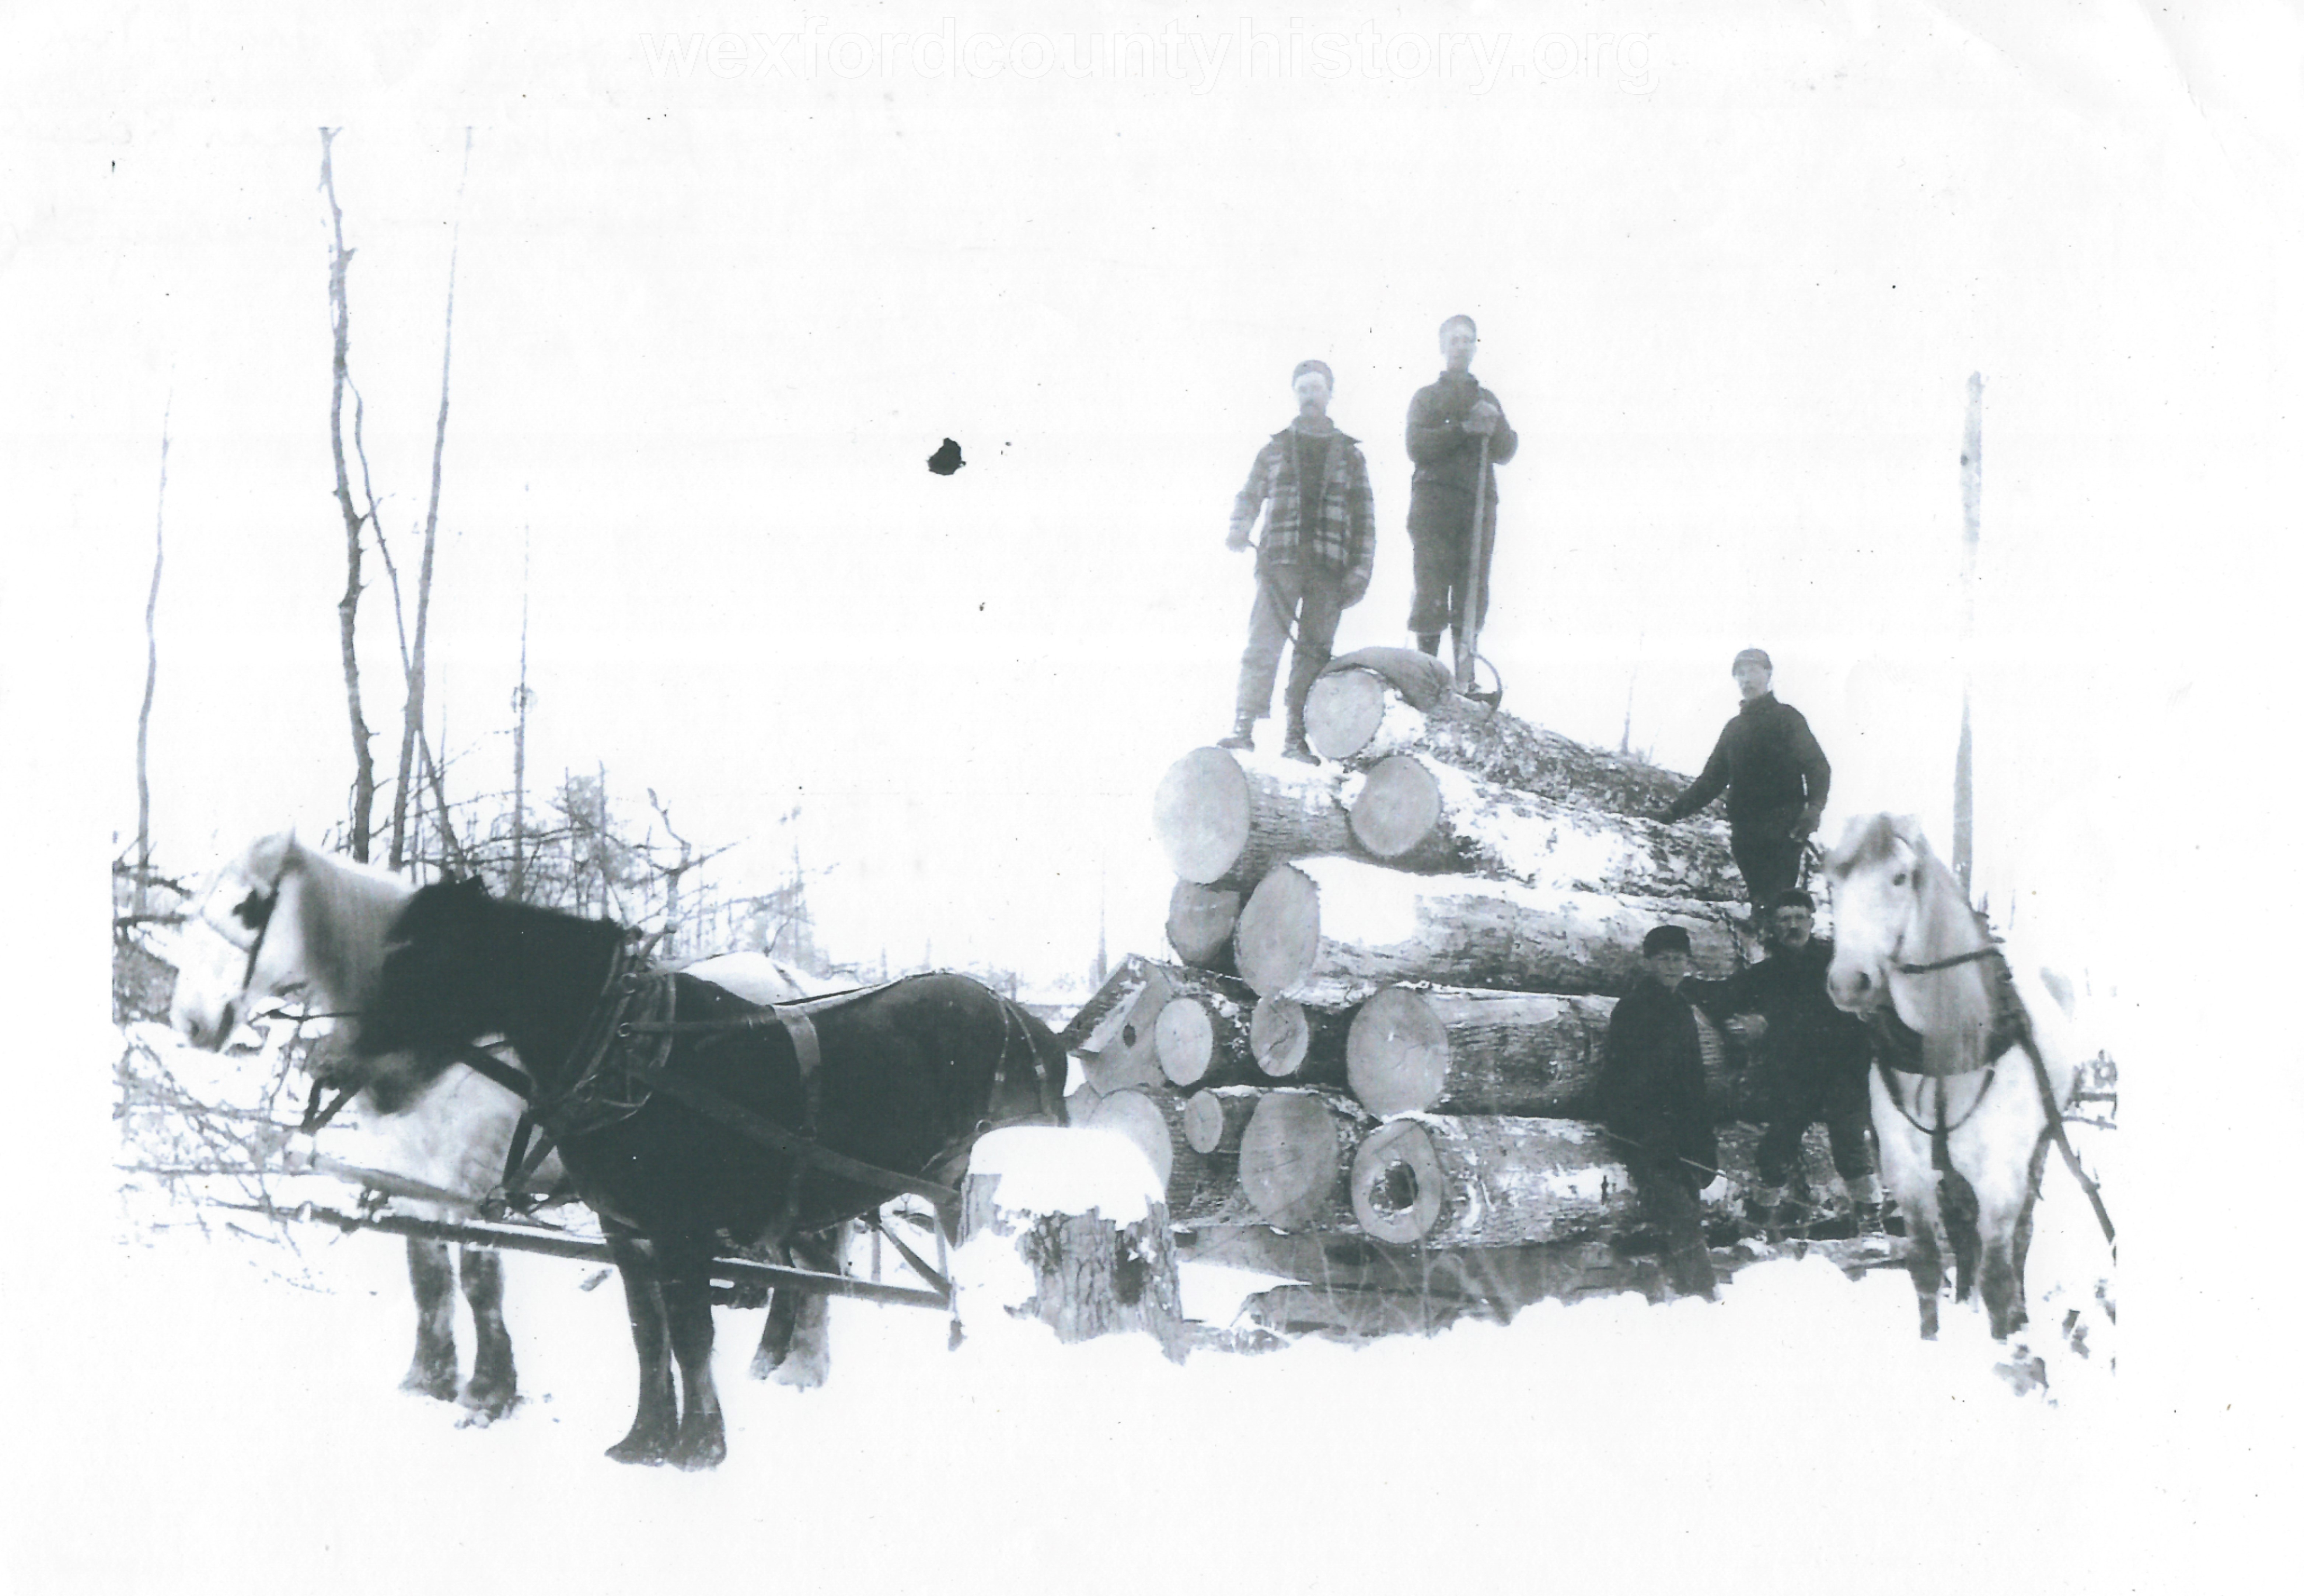 Cadillac-Lumber-Horse-Team-Pulling-Load-Of-Logs-On-Sled-11